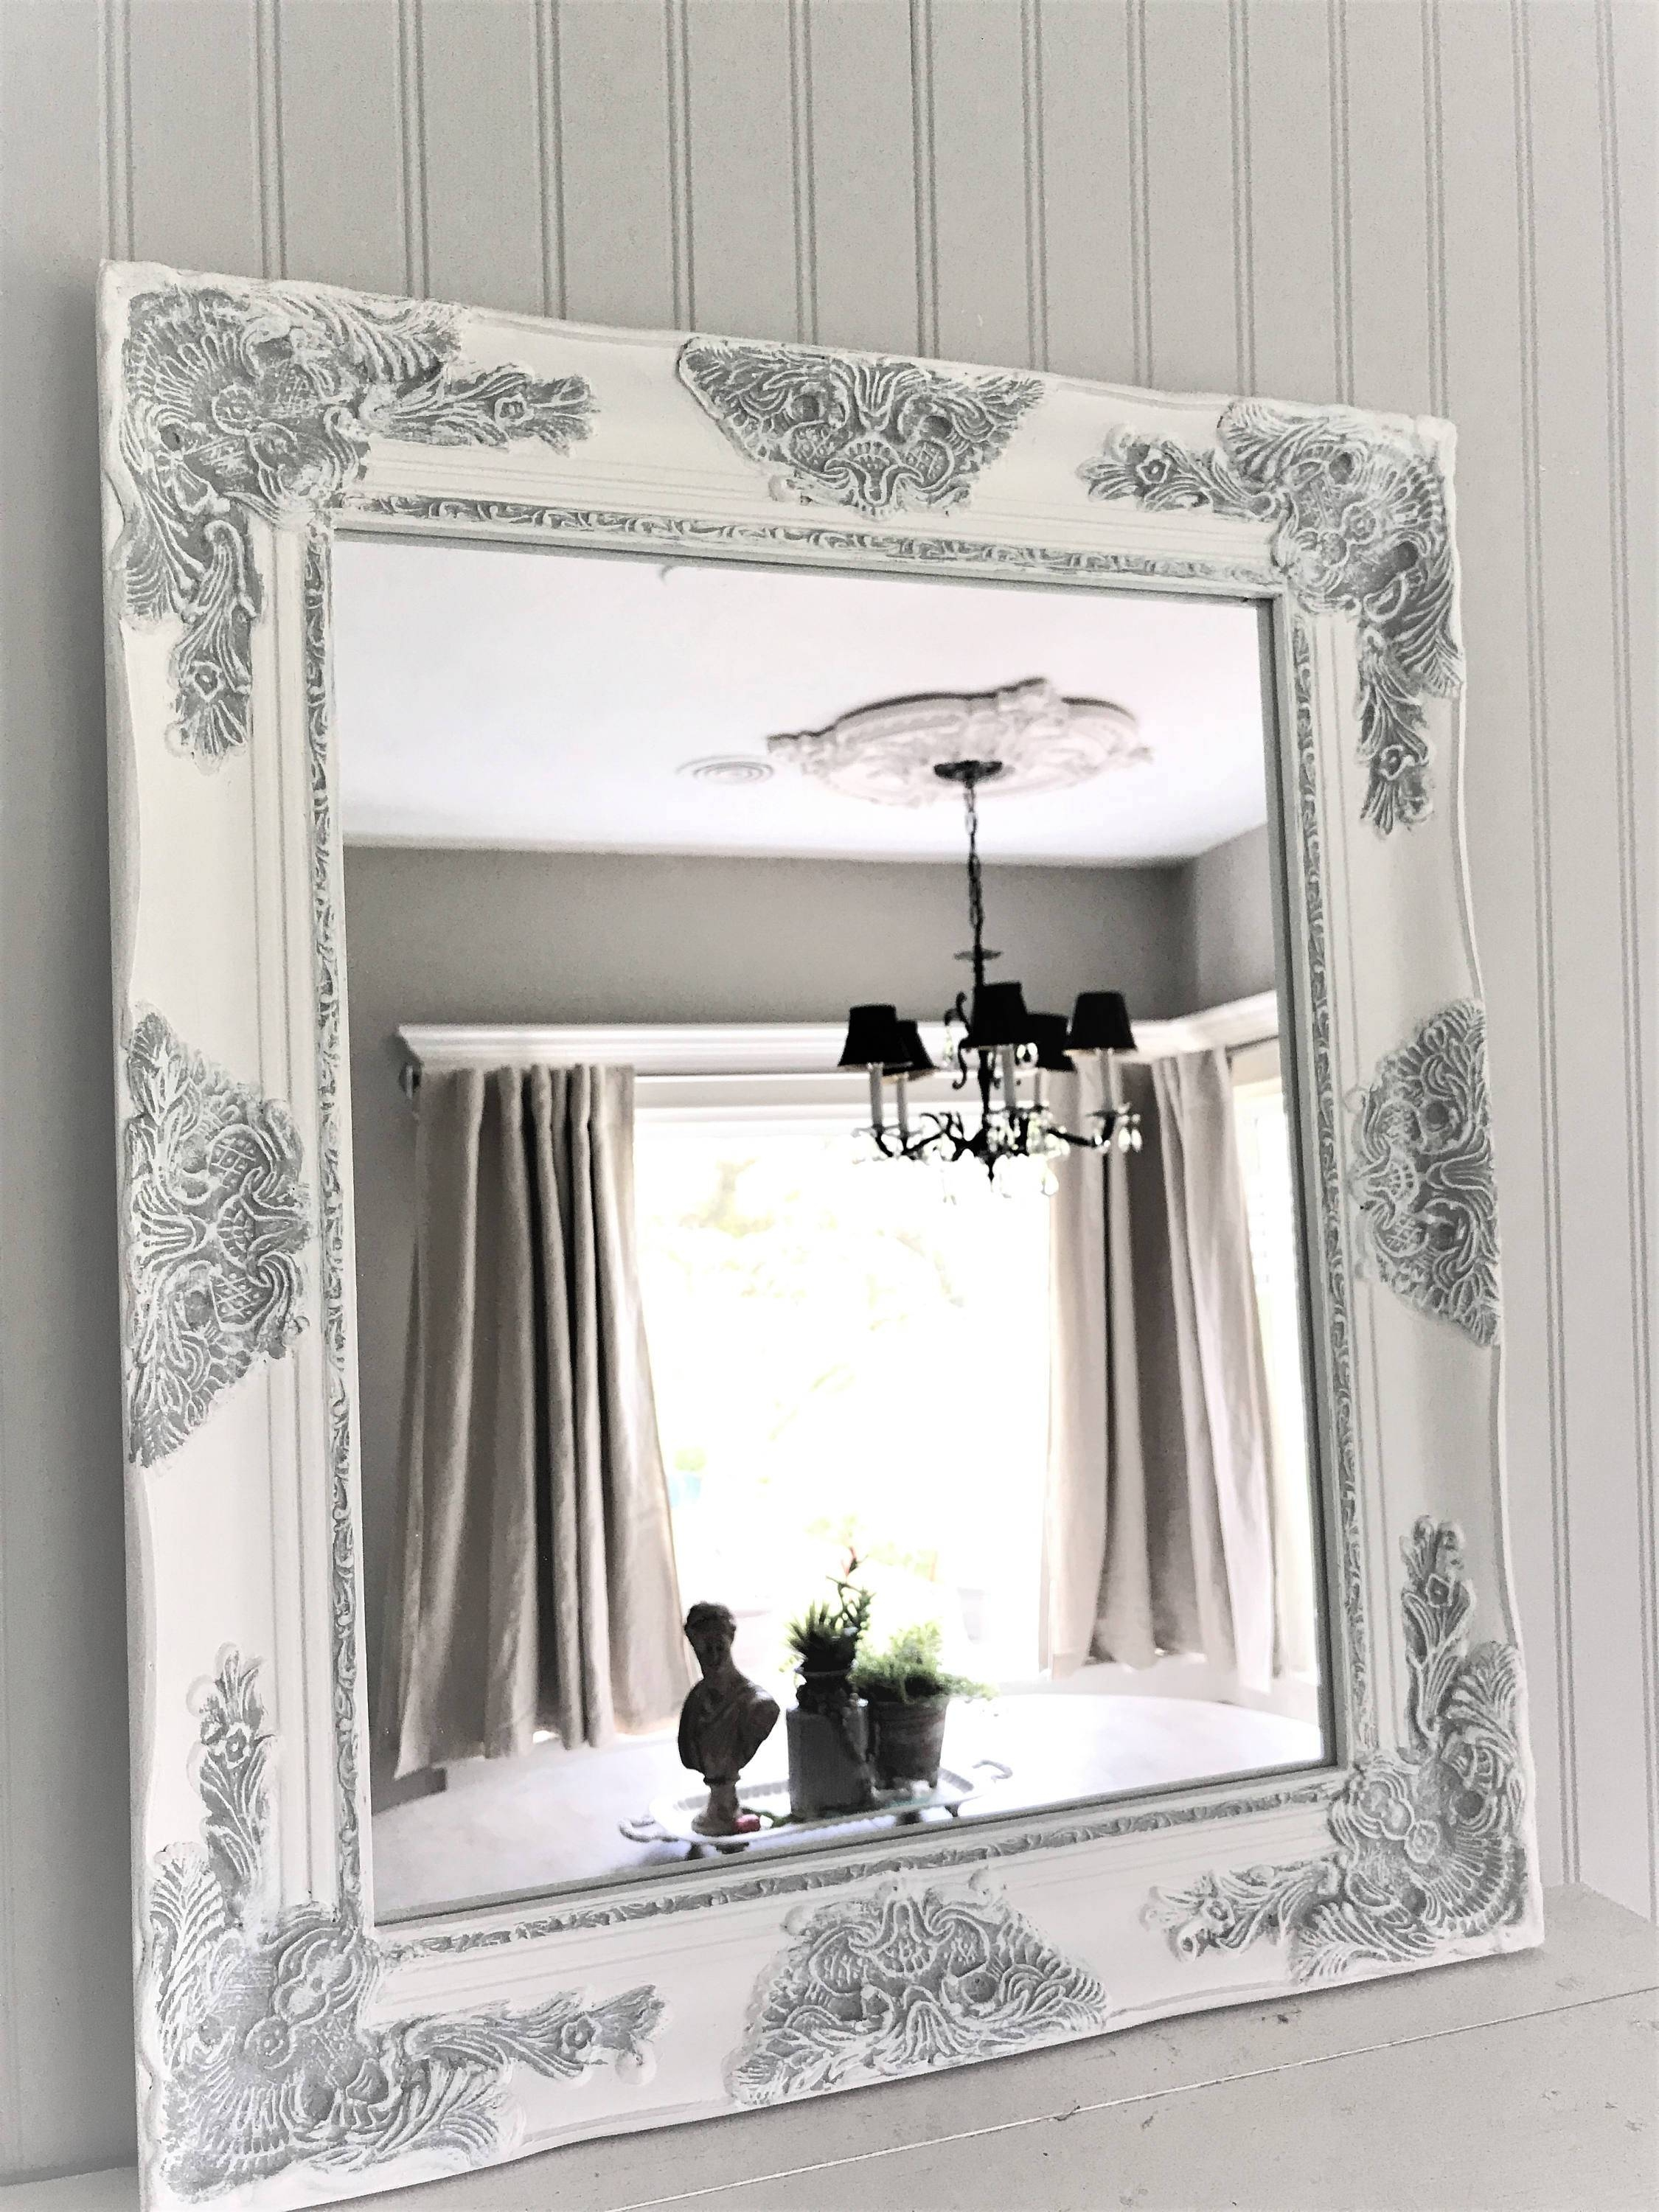 Mirror : 4Ft11 X 3Ft4 Large Silver Carved Ornate Wall Mounted inside Large White French Mirrors (Image 3 of 15)